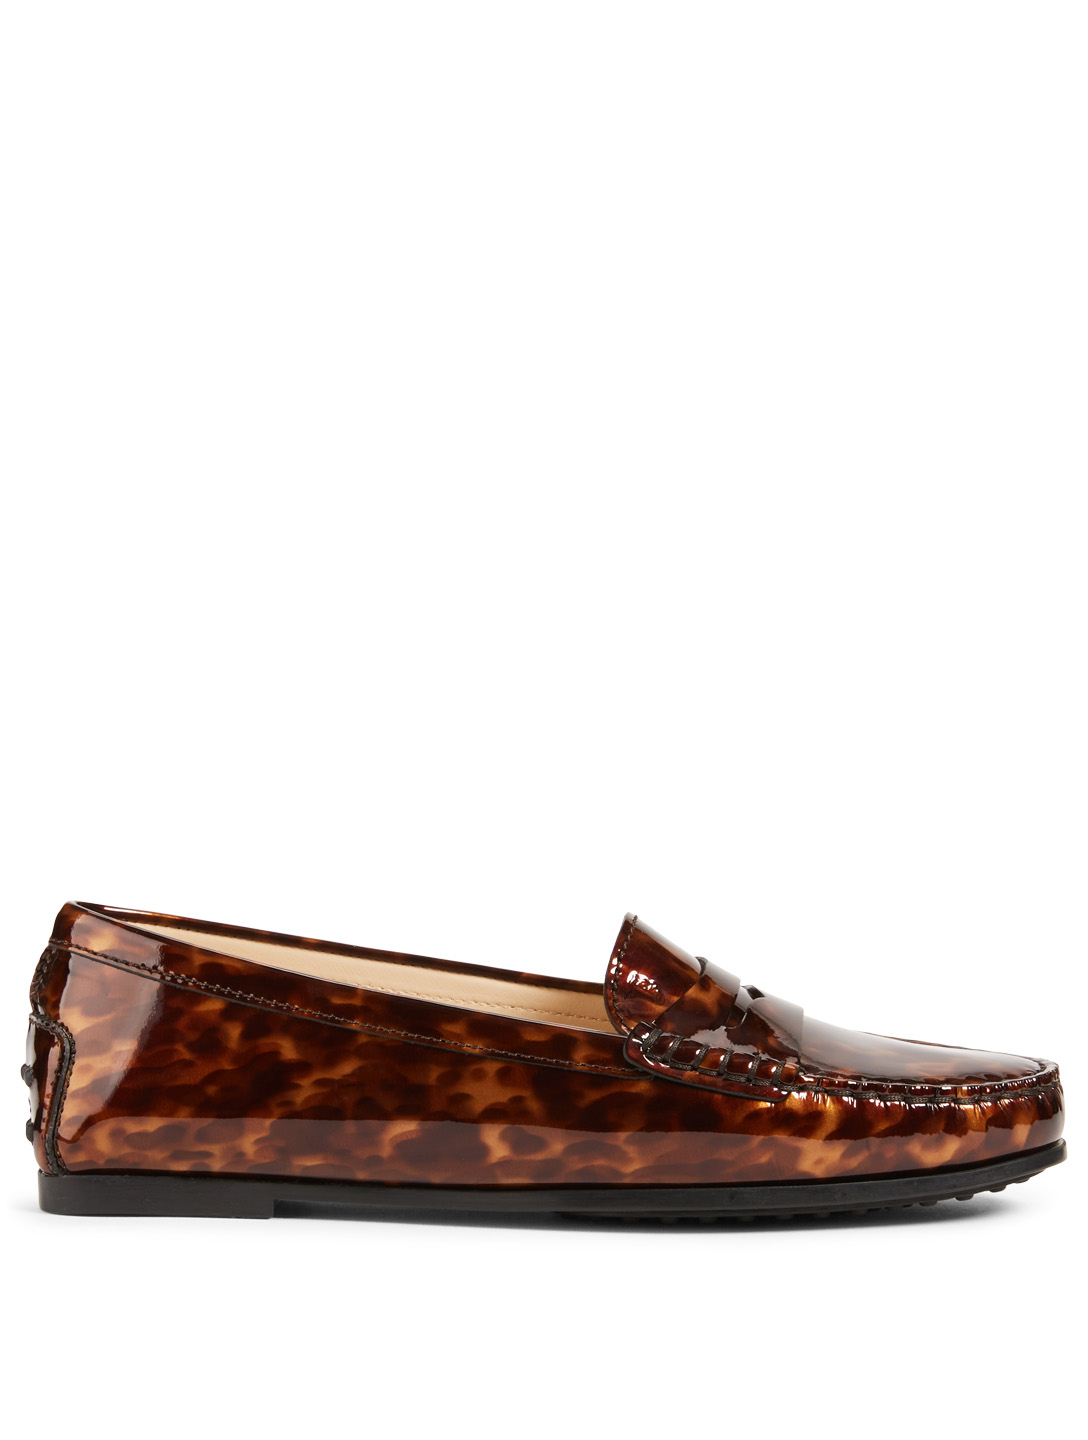 f391f00eb9 TOD'S City Gommino Patent Leather Driving Shoes | Holt Renfrew